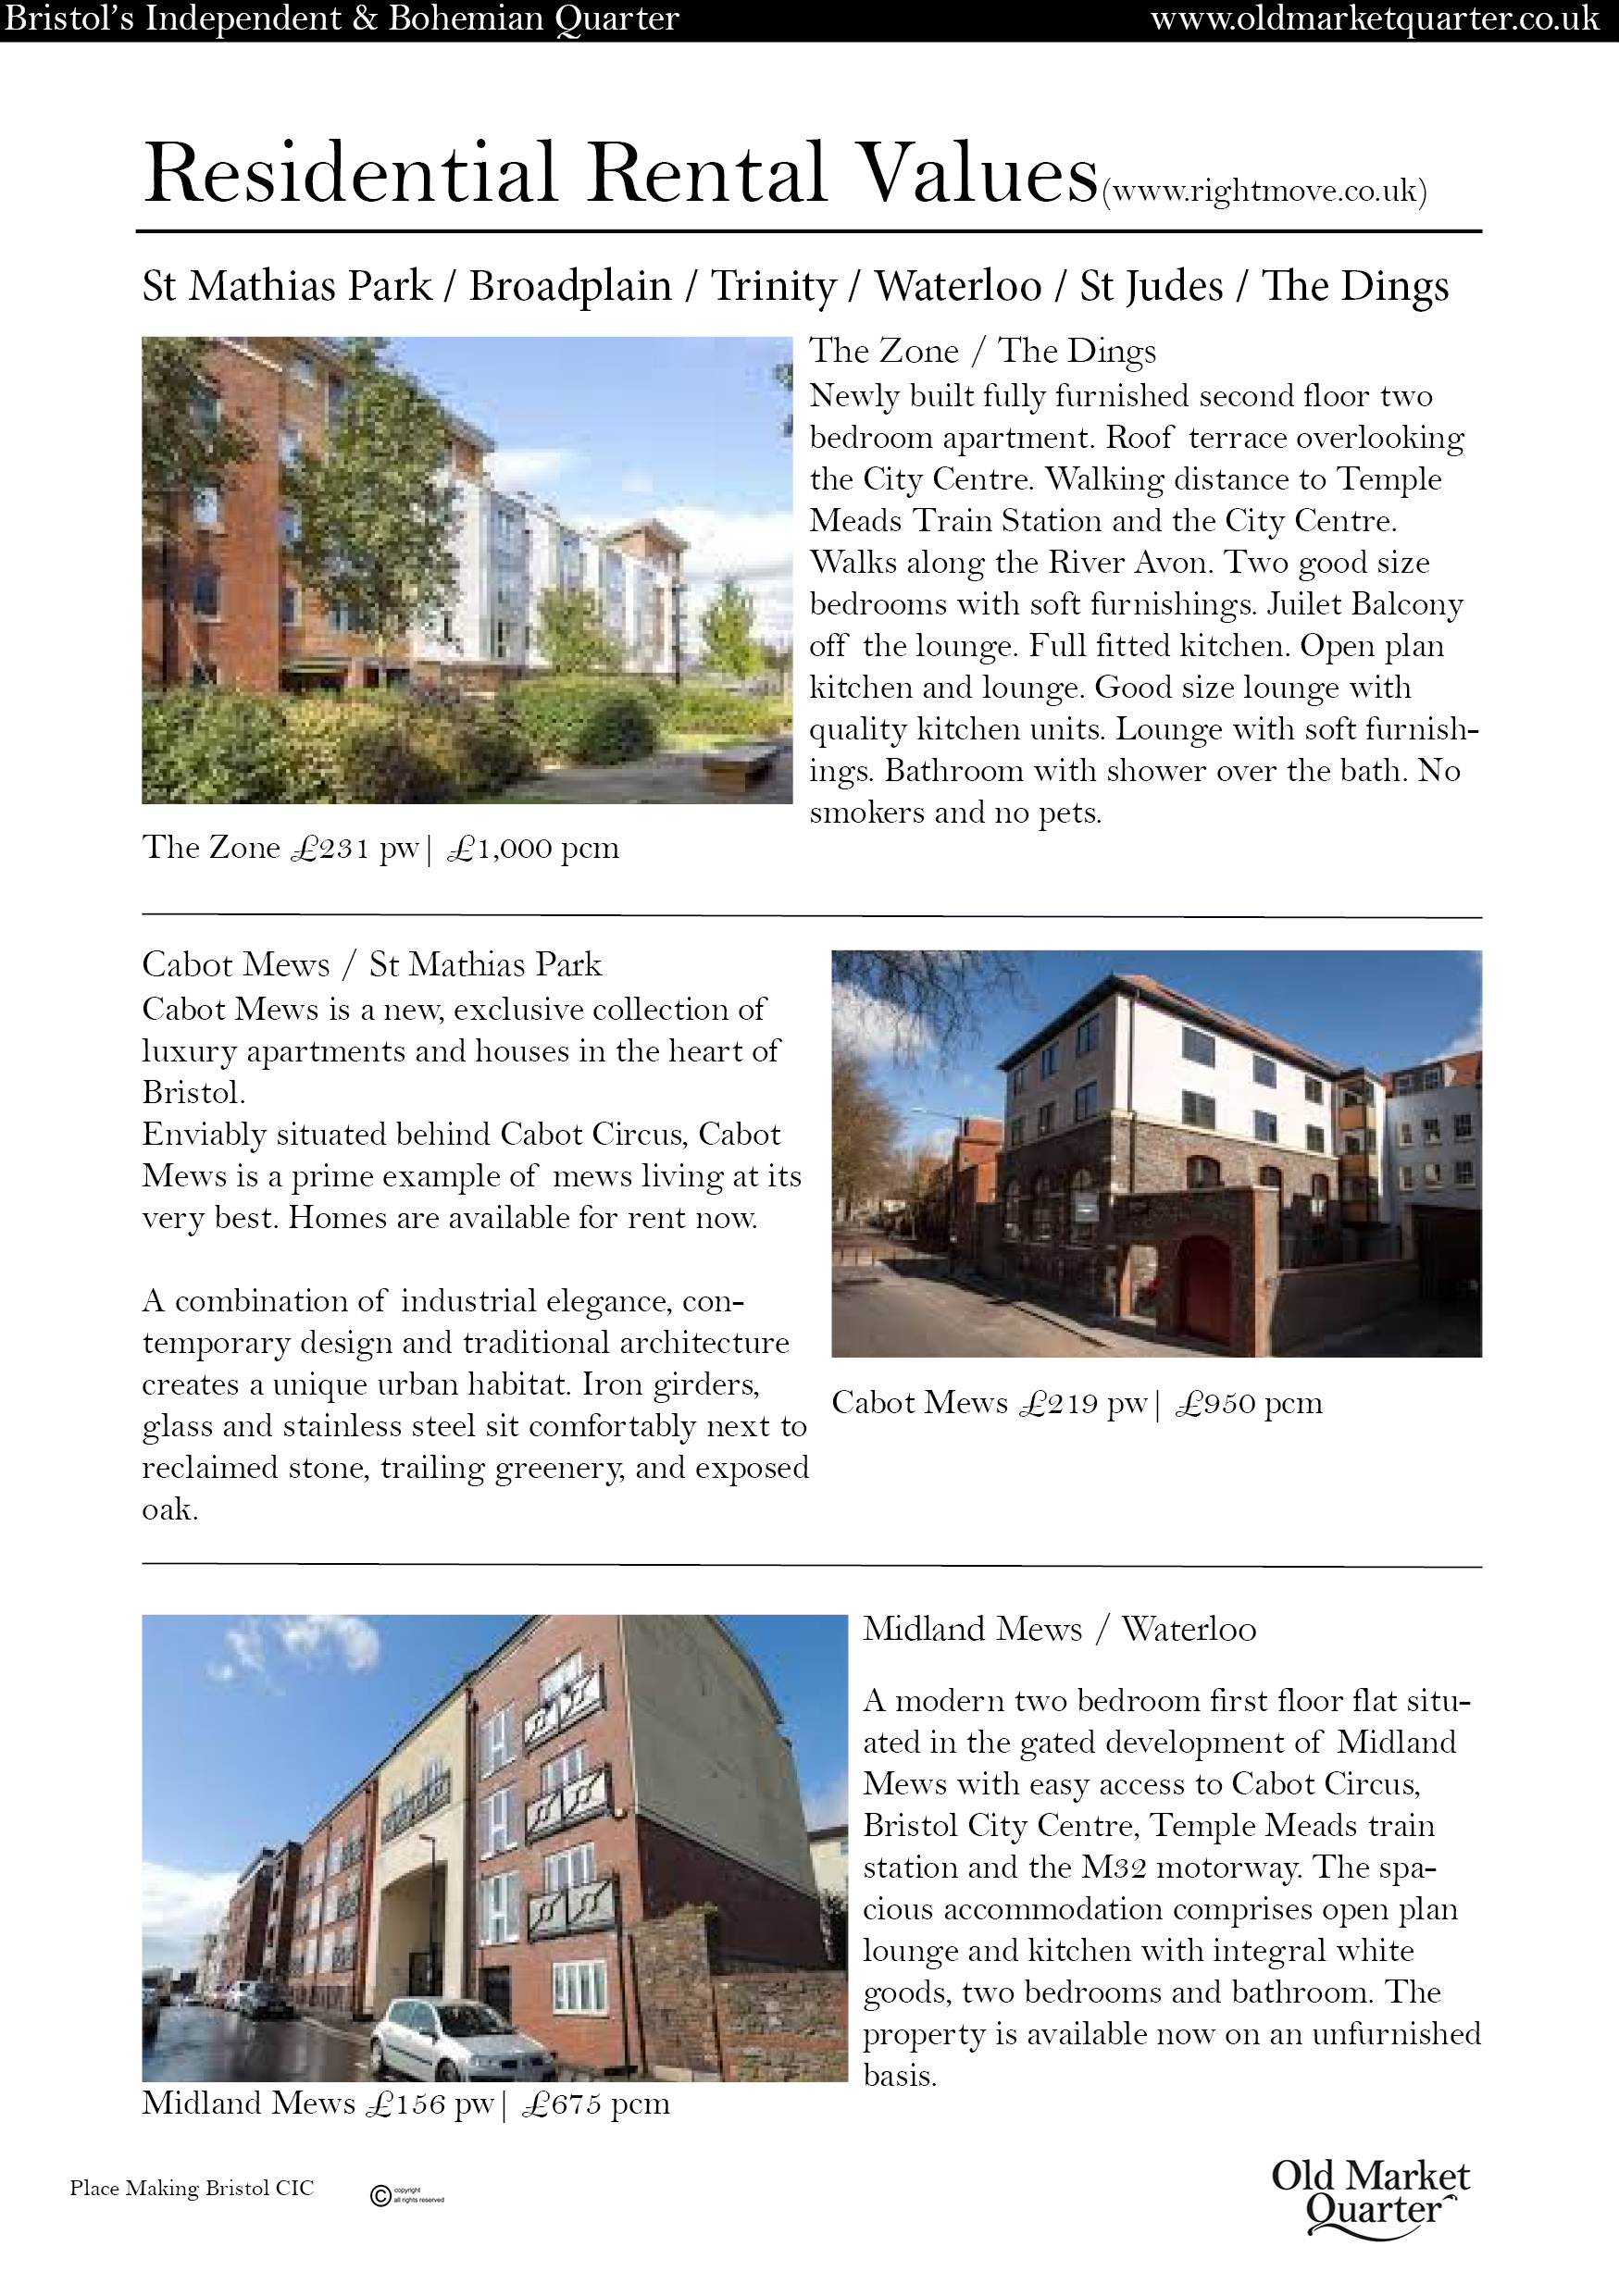 Old Market Quarter Strategic Plan Vision and progress10